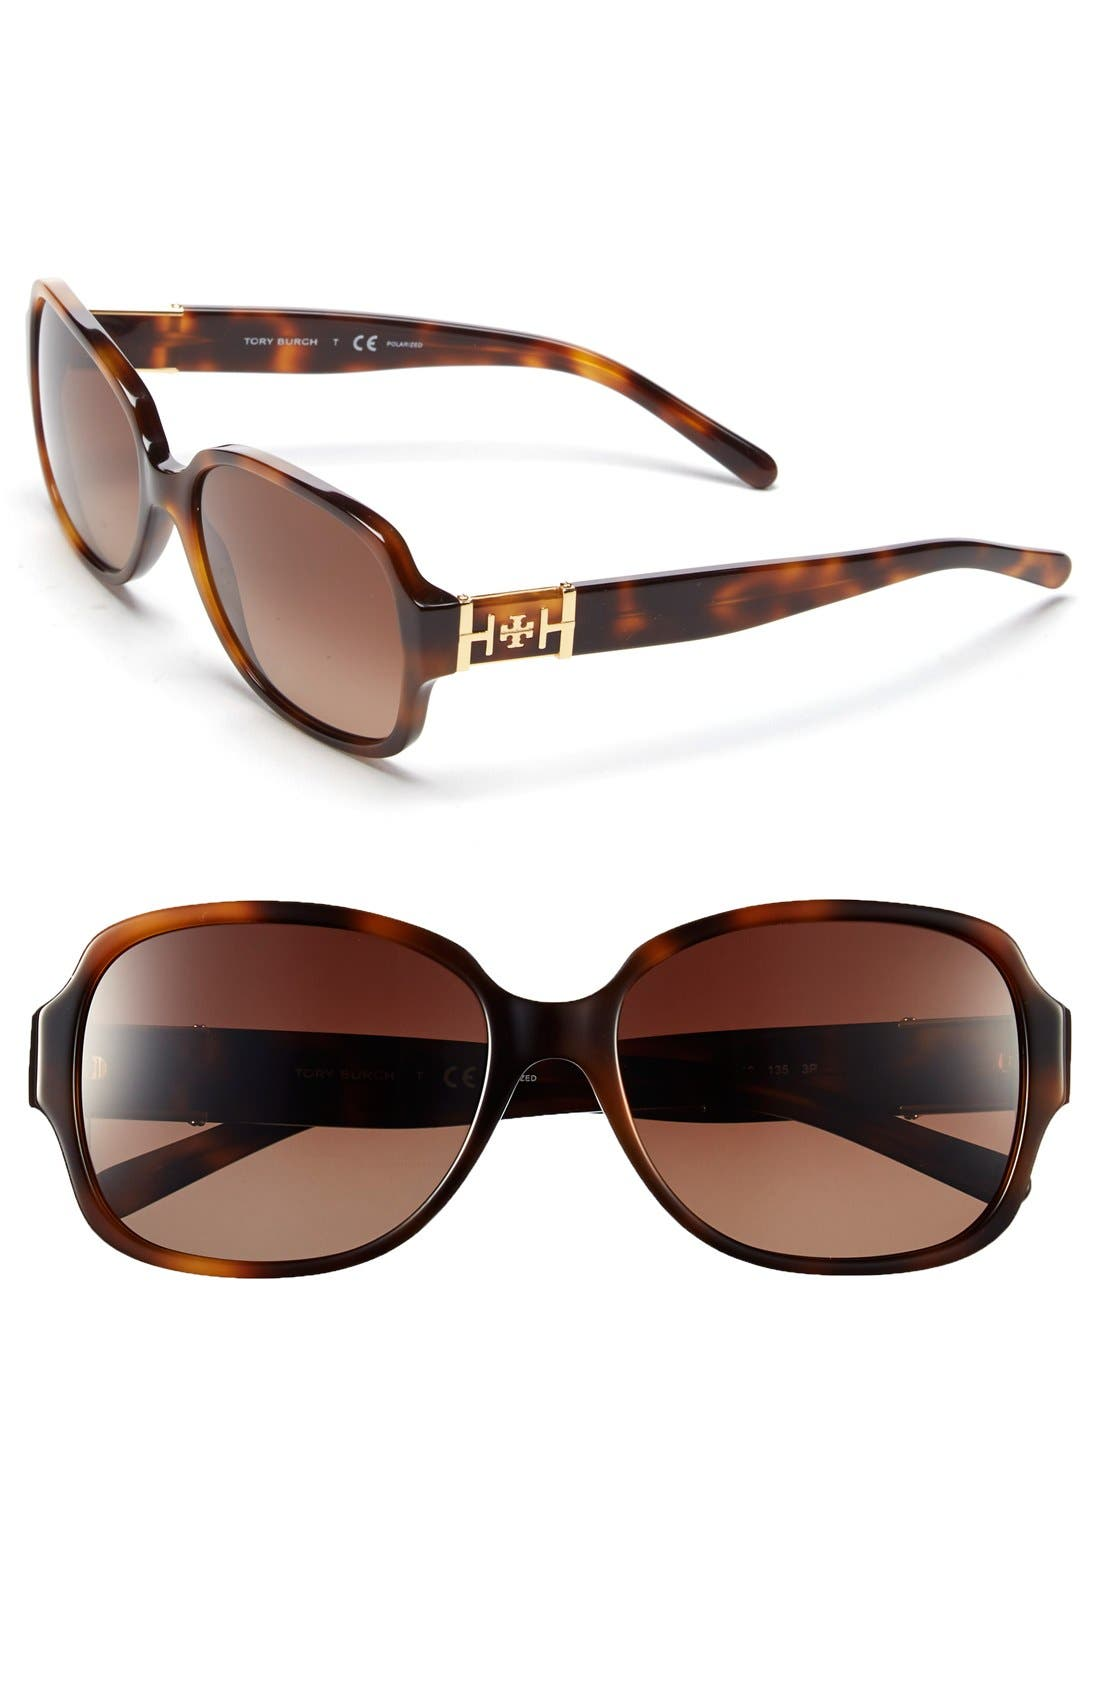 Alternate Image 1 Selected - Tory Burch 57mm Polarized Sunglasses (Nordstrom Exclusive)